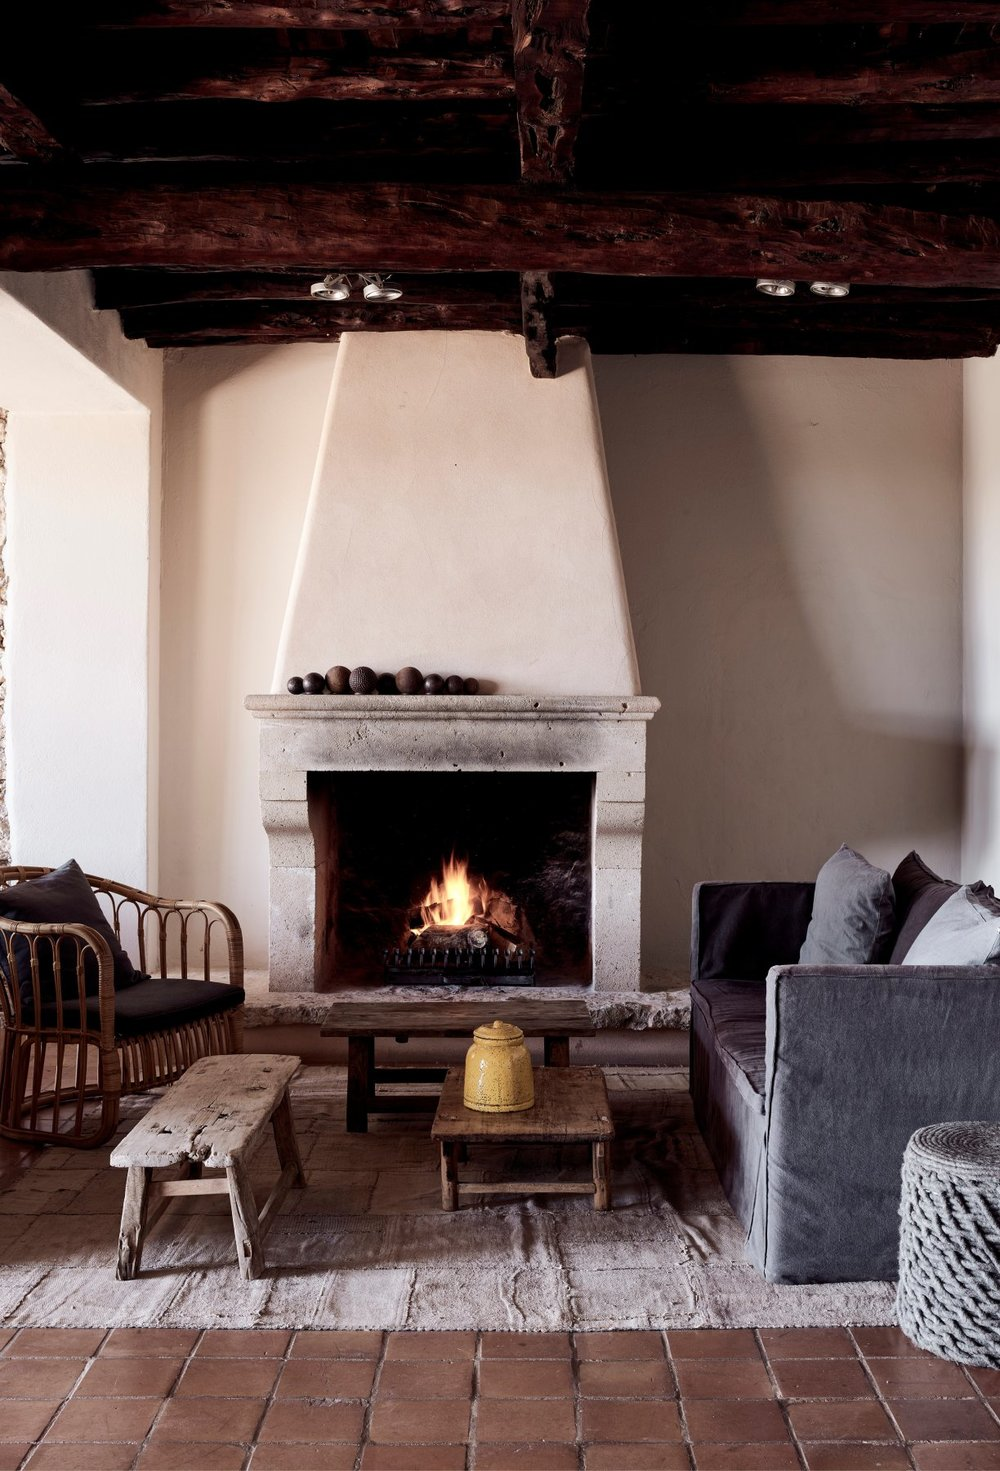 la-granja-ibiza-design-interior-living-room-fireplace-cosy.jpg